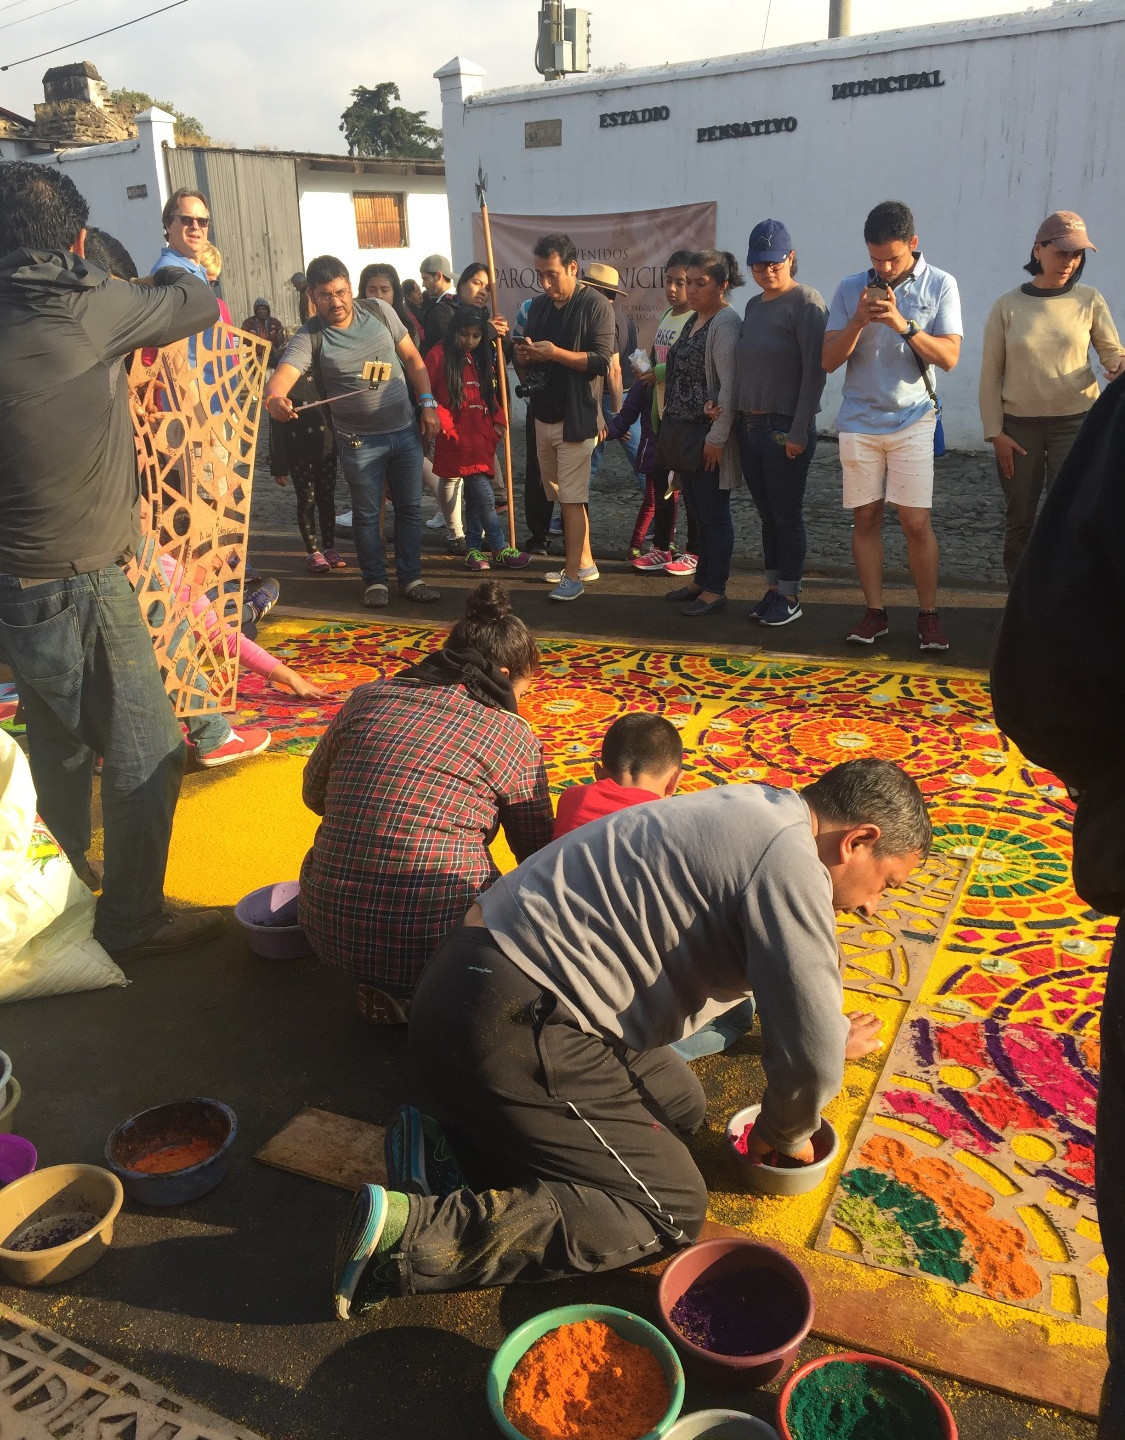 Team working on the alfombra